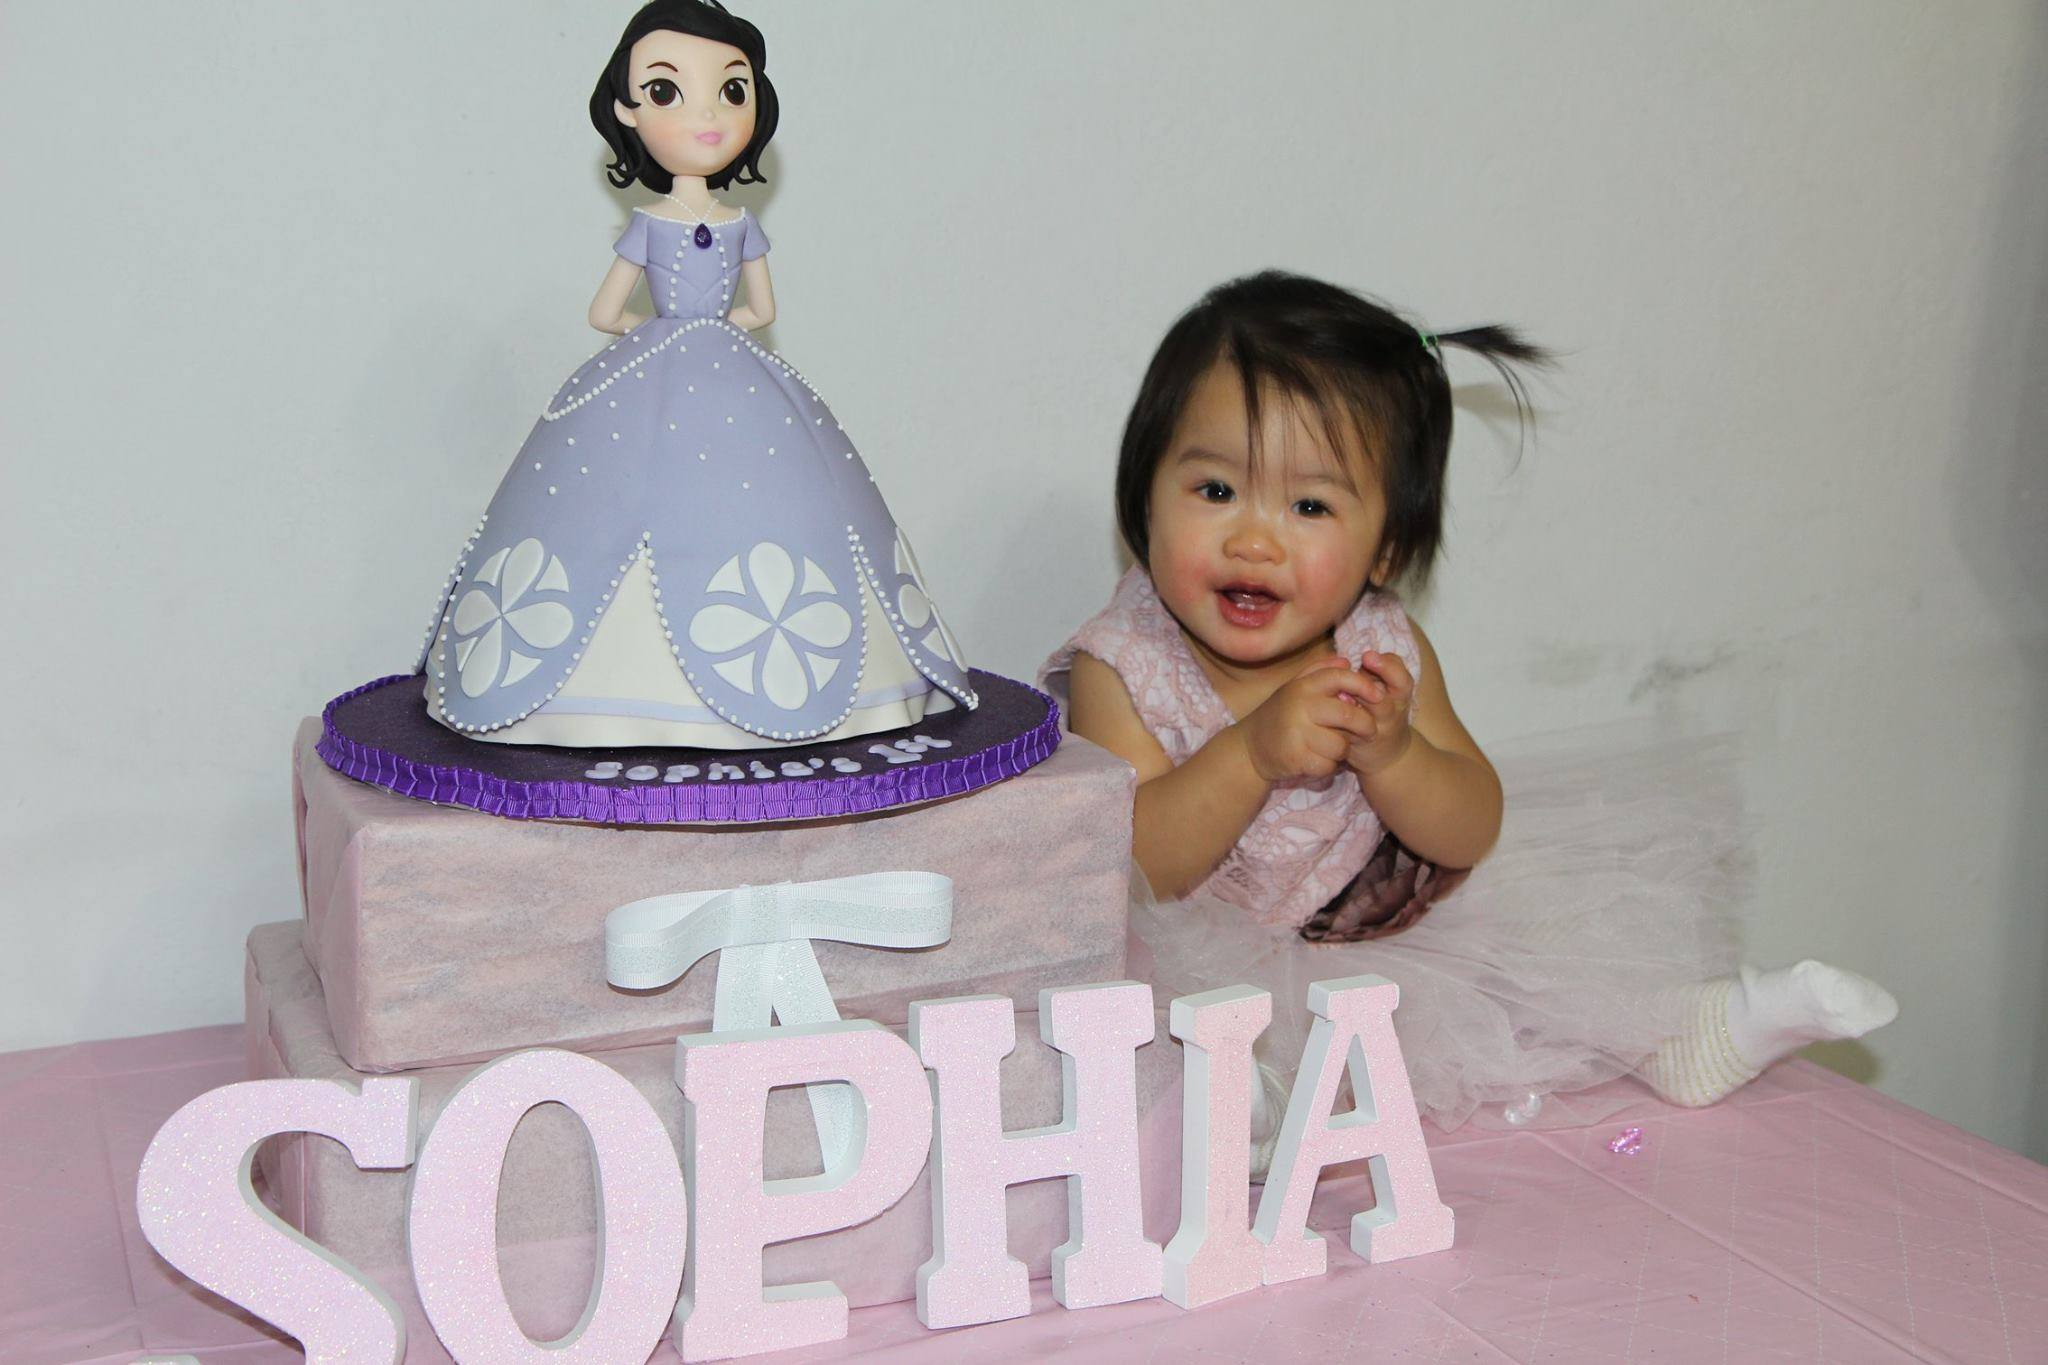 Sophia with her Sofia cake.